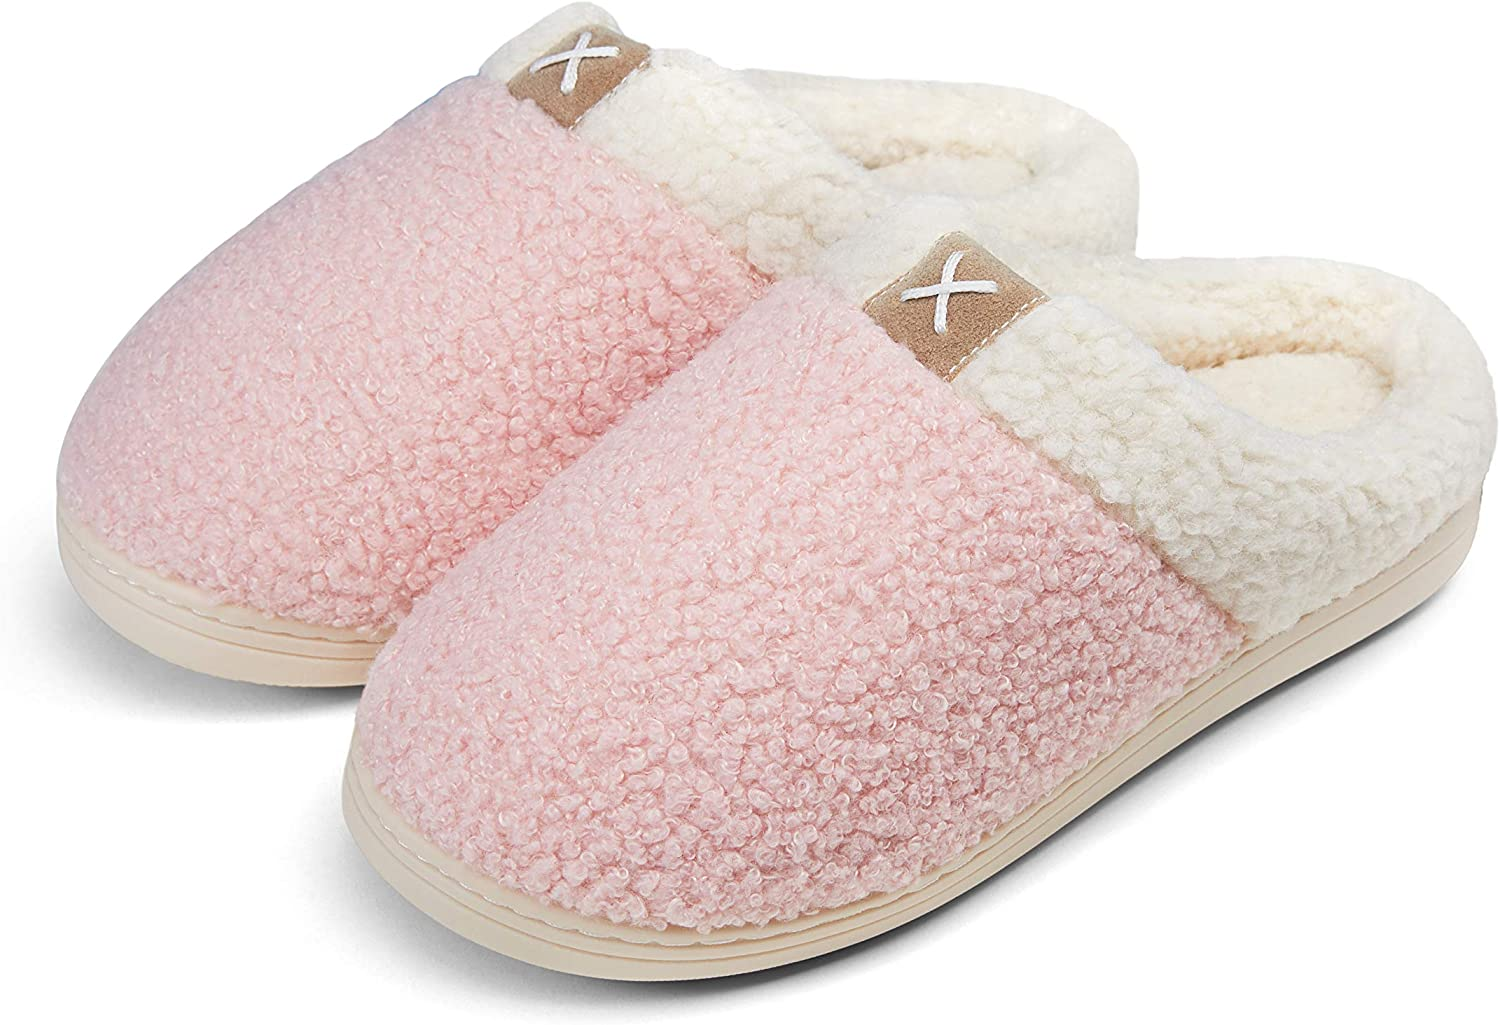 Vepose Women's Cozy Slippers Memory Foam T New life Daily bargain sale Fur Lined Faux Closed